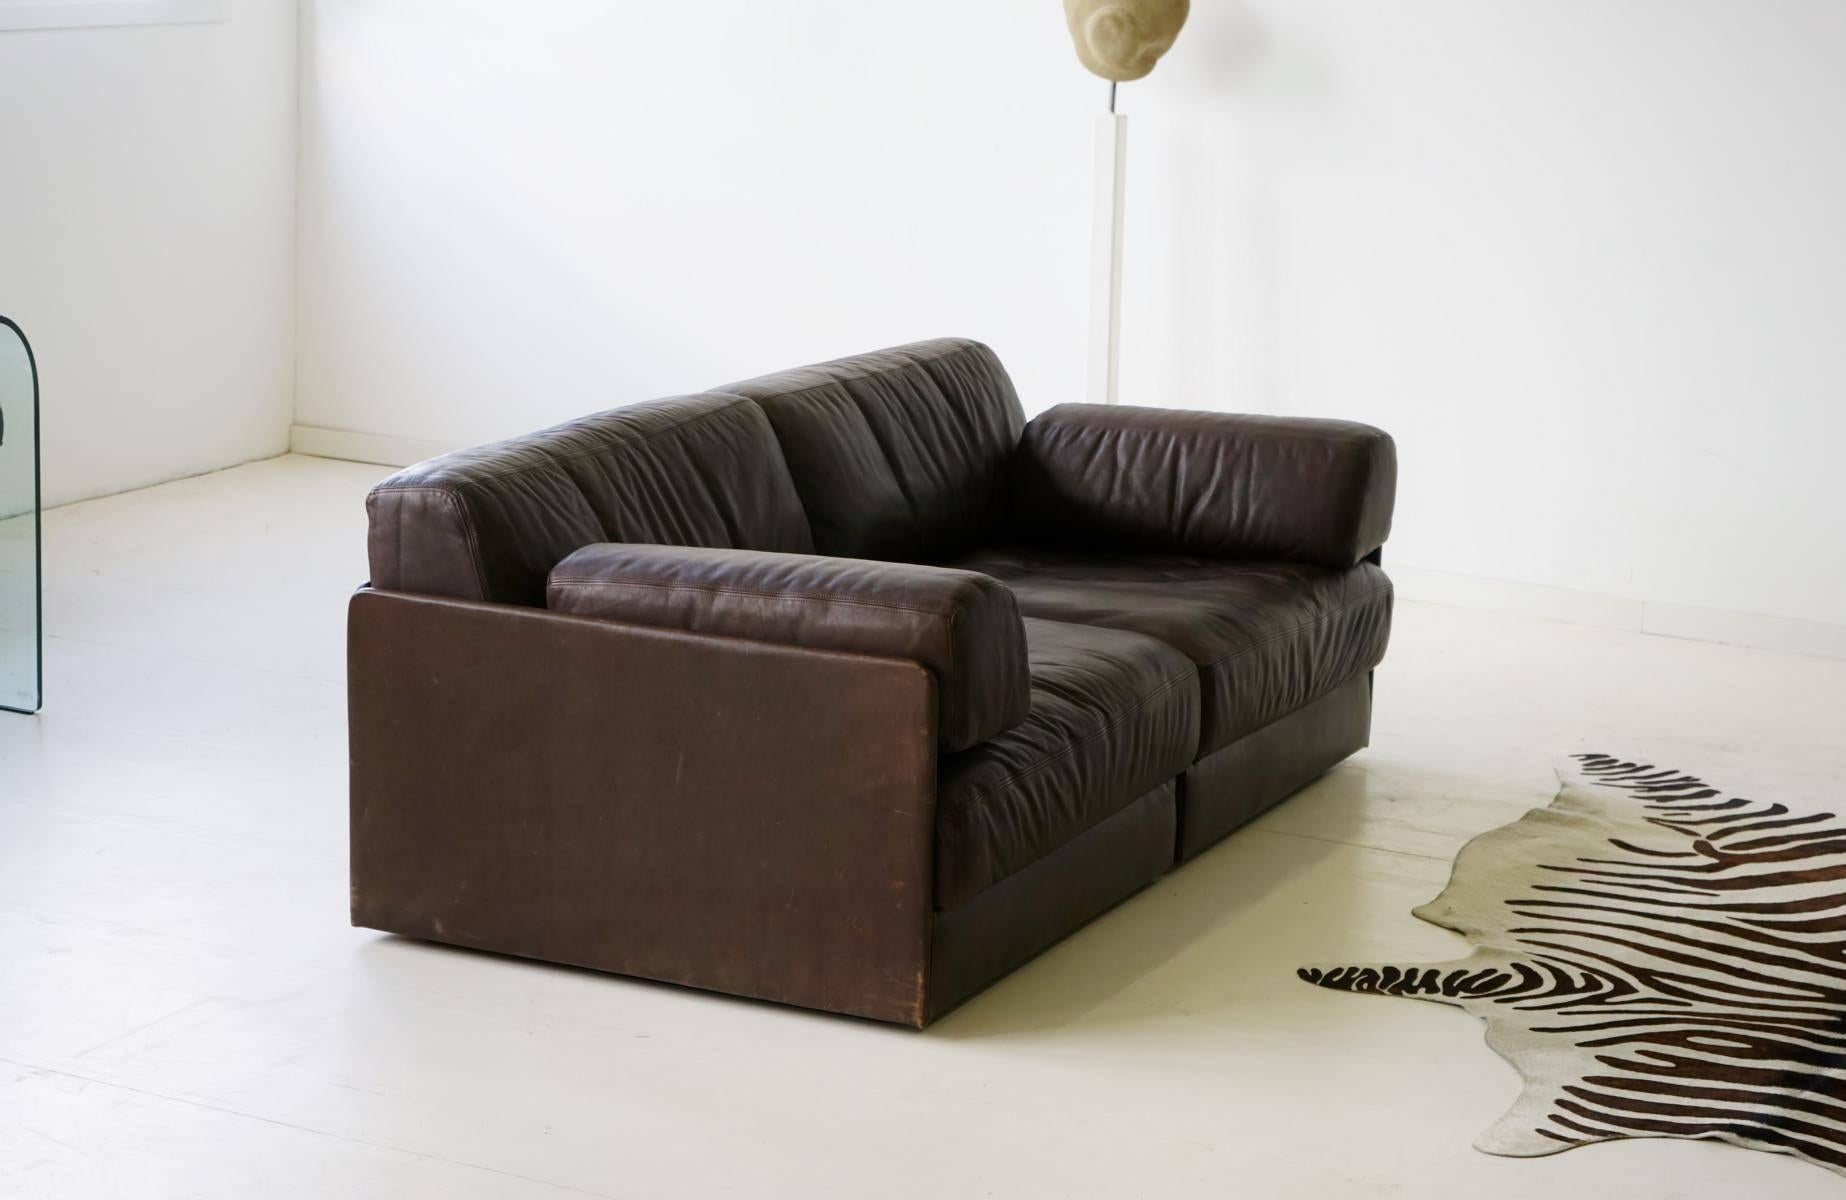 Two Seat, De Sede Ds 76 Leather Modular Lounge Sofa Daybed For Sale 1